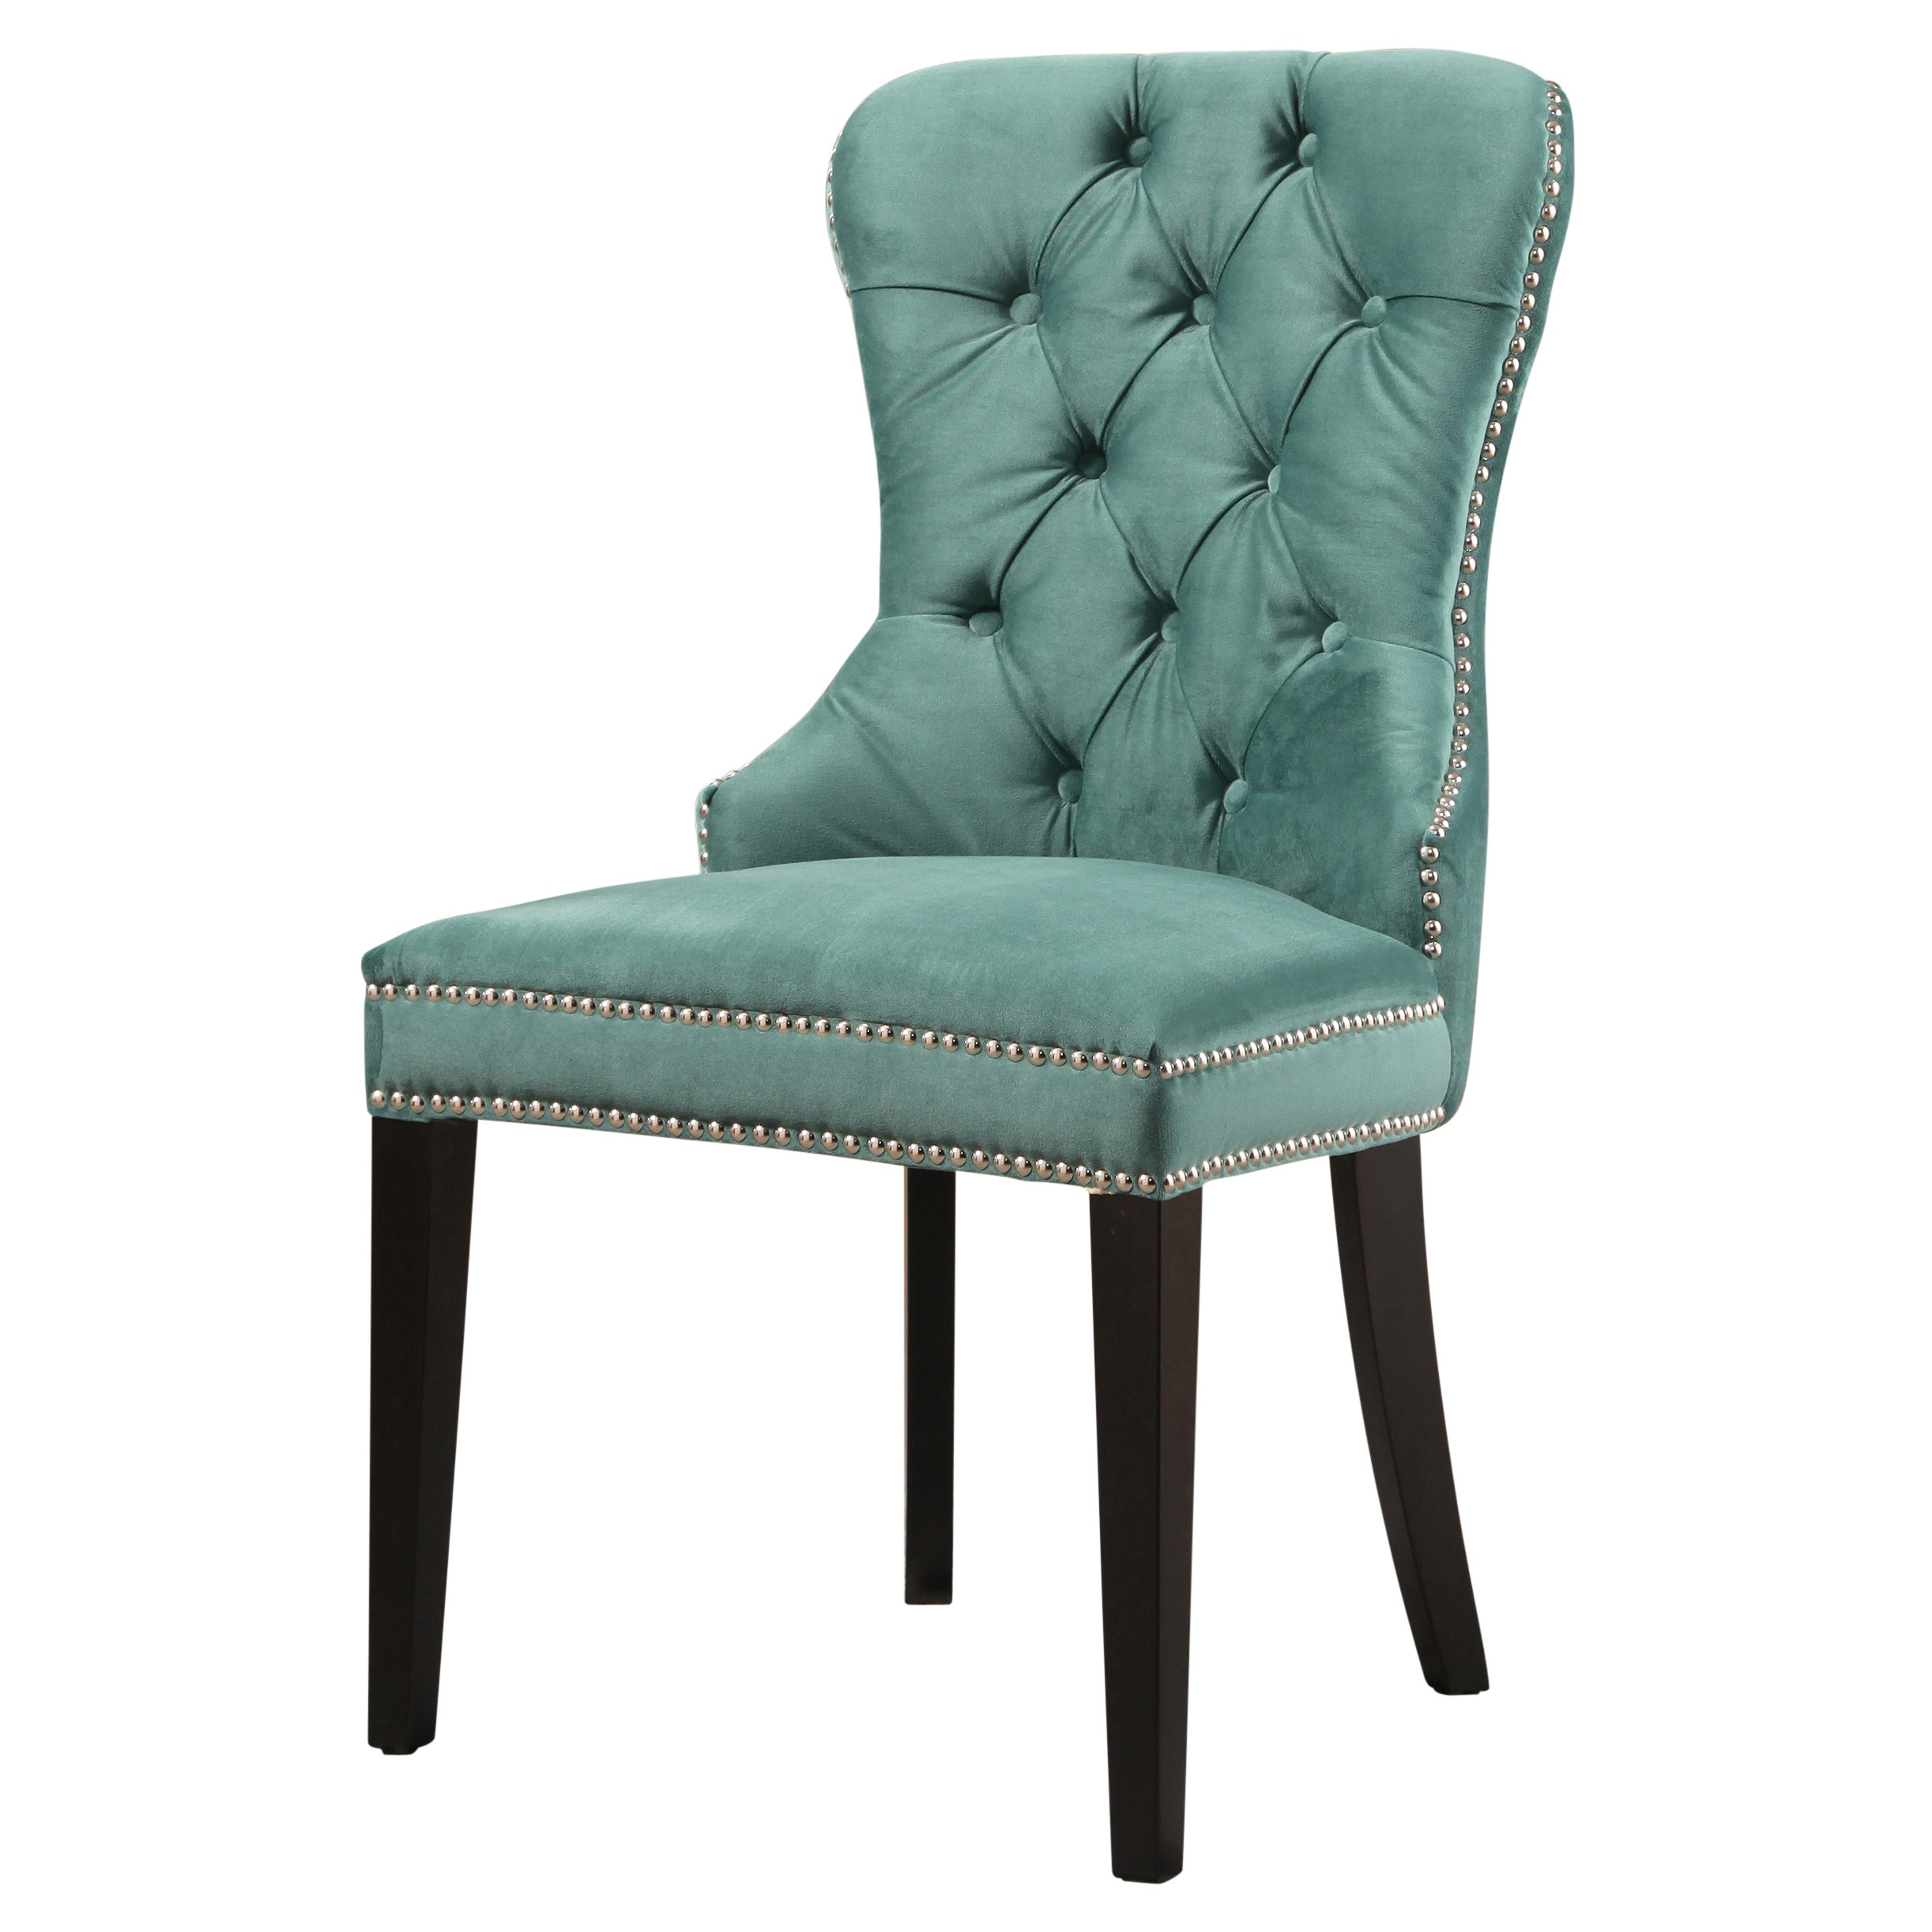 Aqua Dining Chairs Abbyson Versailles Tufted Velvet Dining Chair